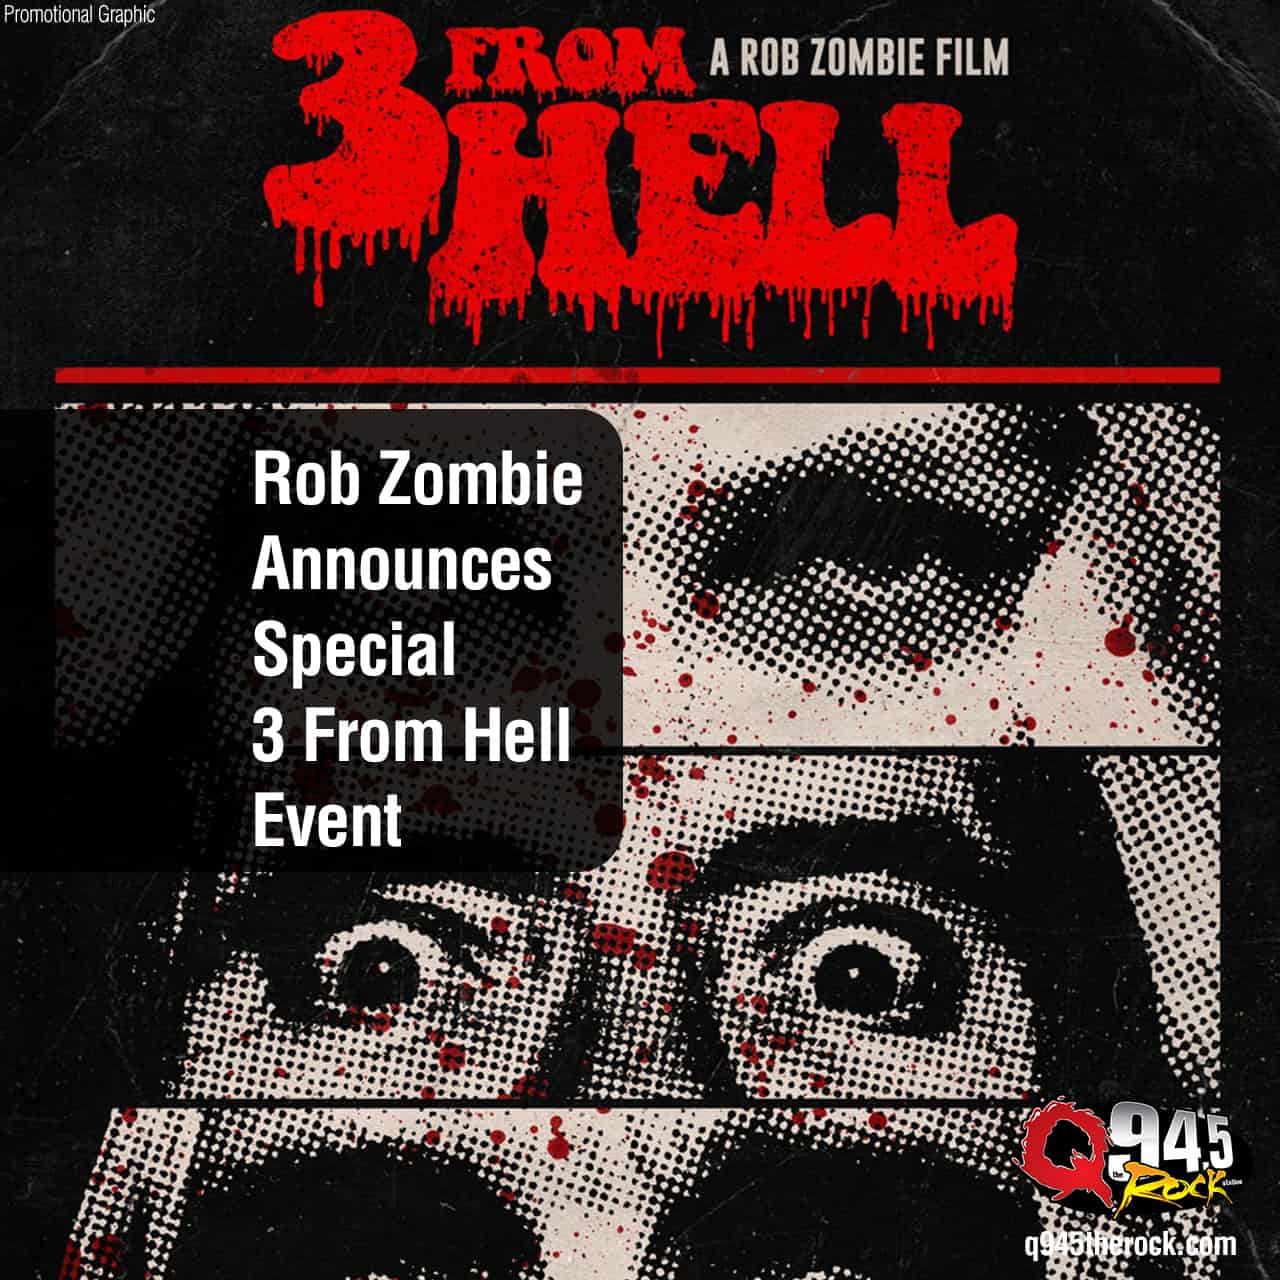 Rob Zombie Announces Special 3 From Hell Event